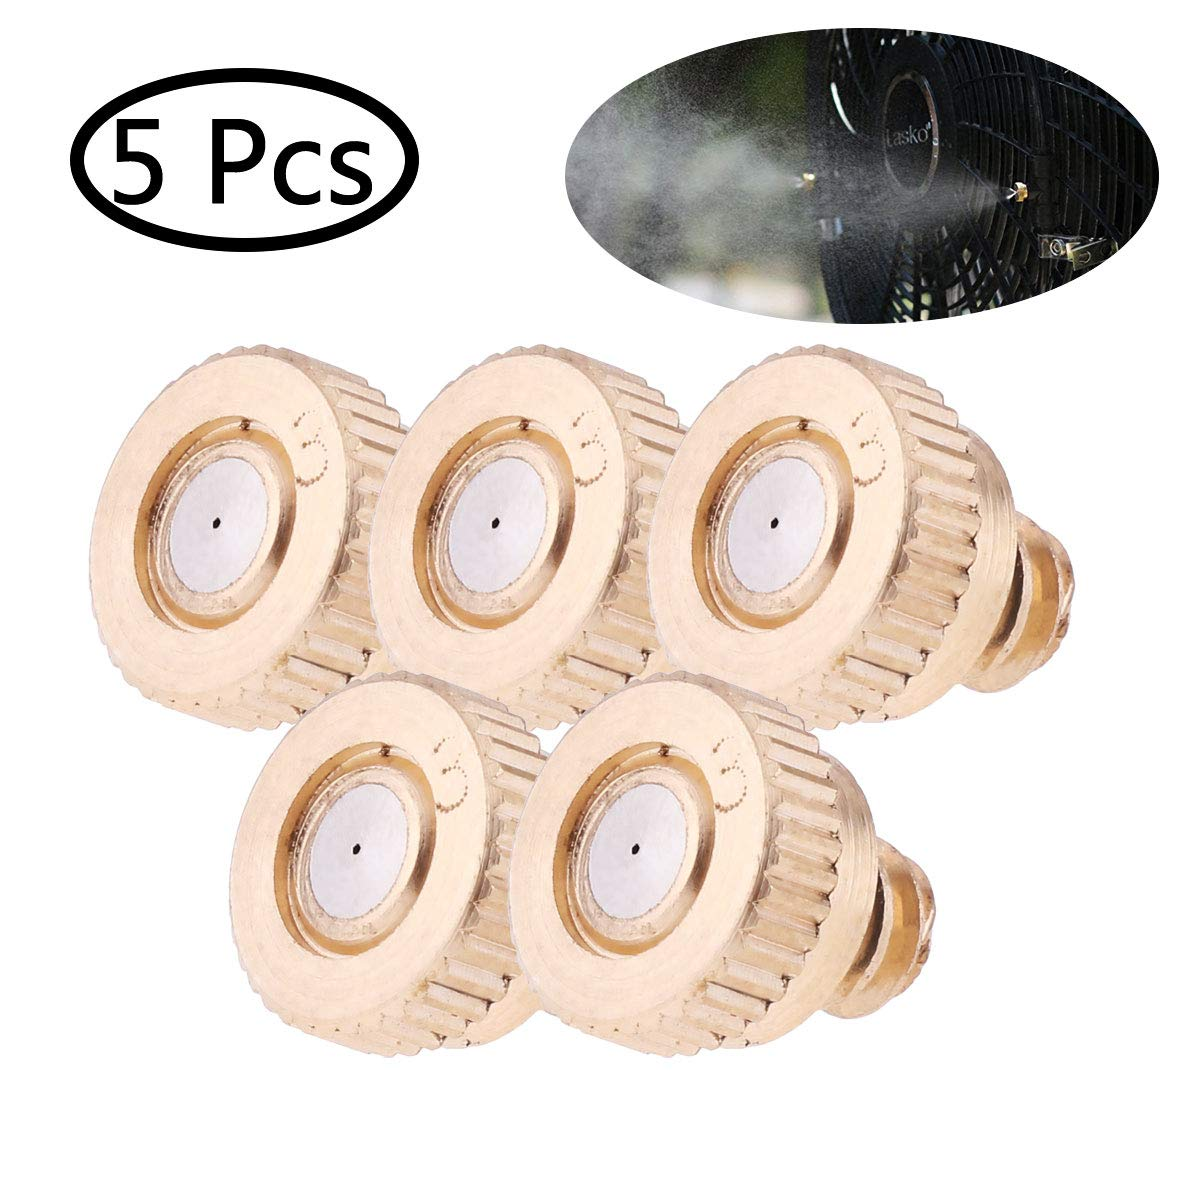 Freebily 5 Pack Brass Misting Nozzles Replacement Heads for Garden Patio Lawn Landscaping Dust Control and Outdoor Cooling System